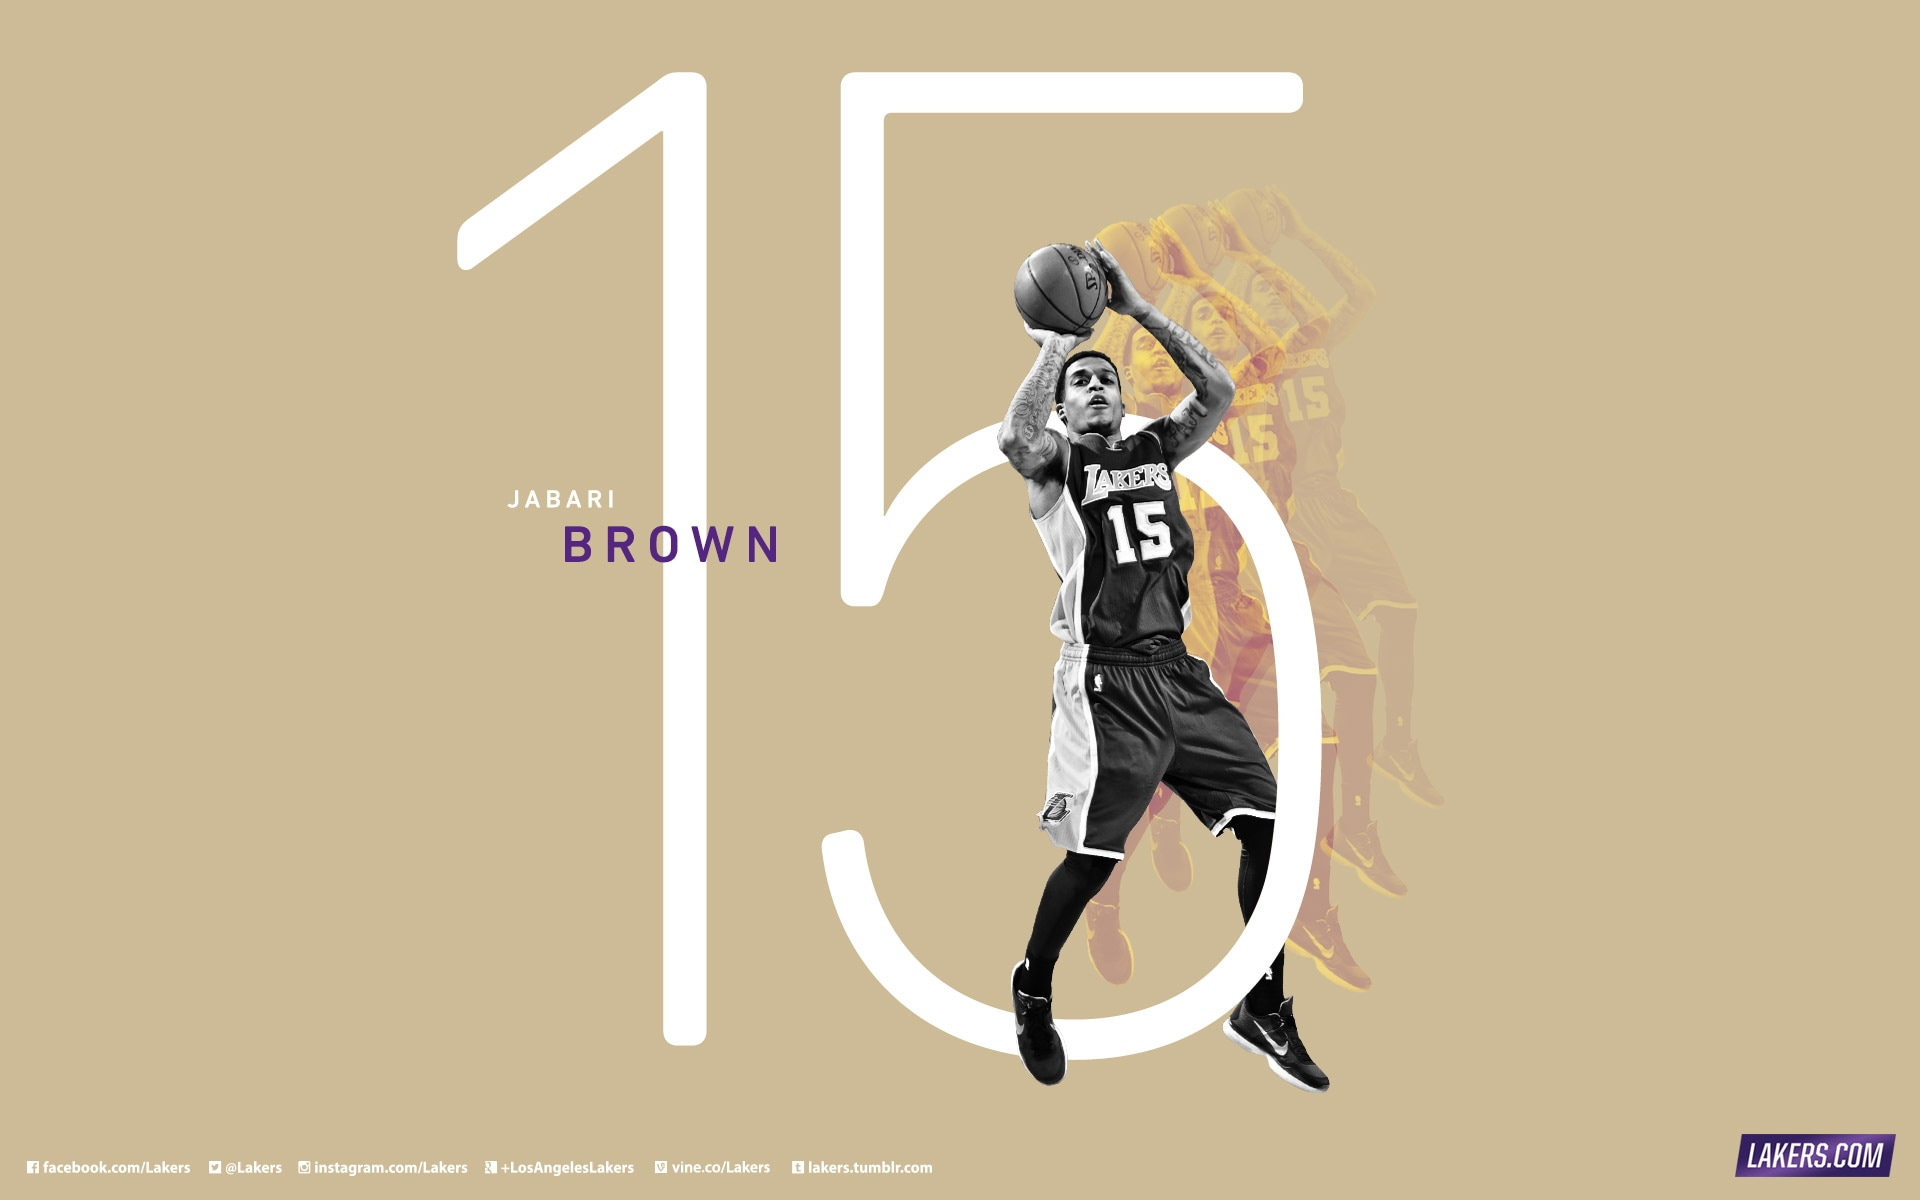 Jabari Brown Player Wallpaper